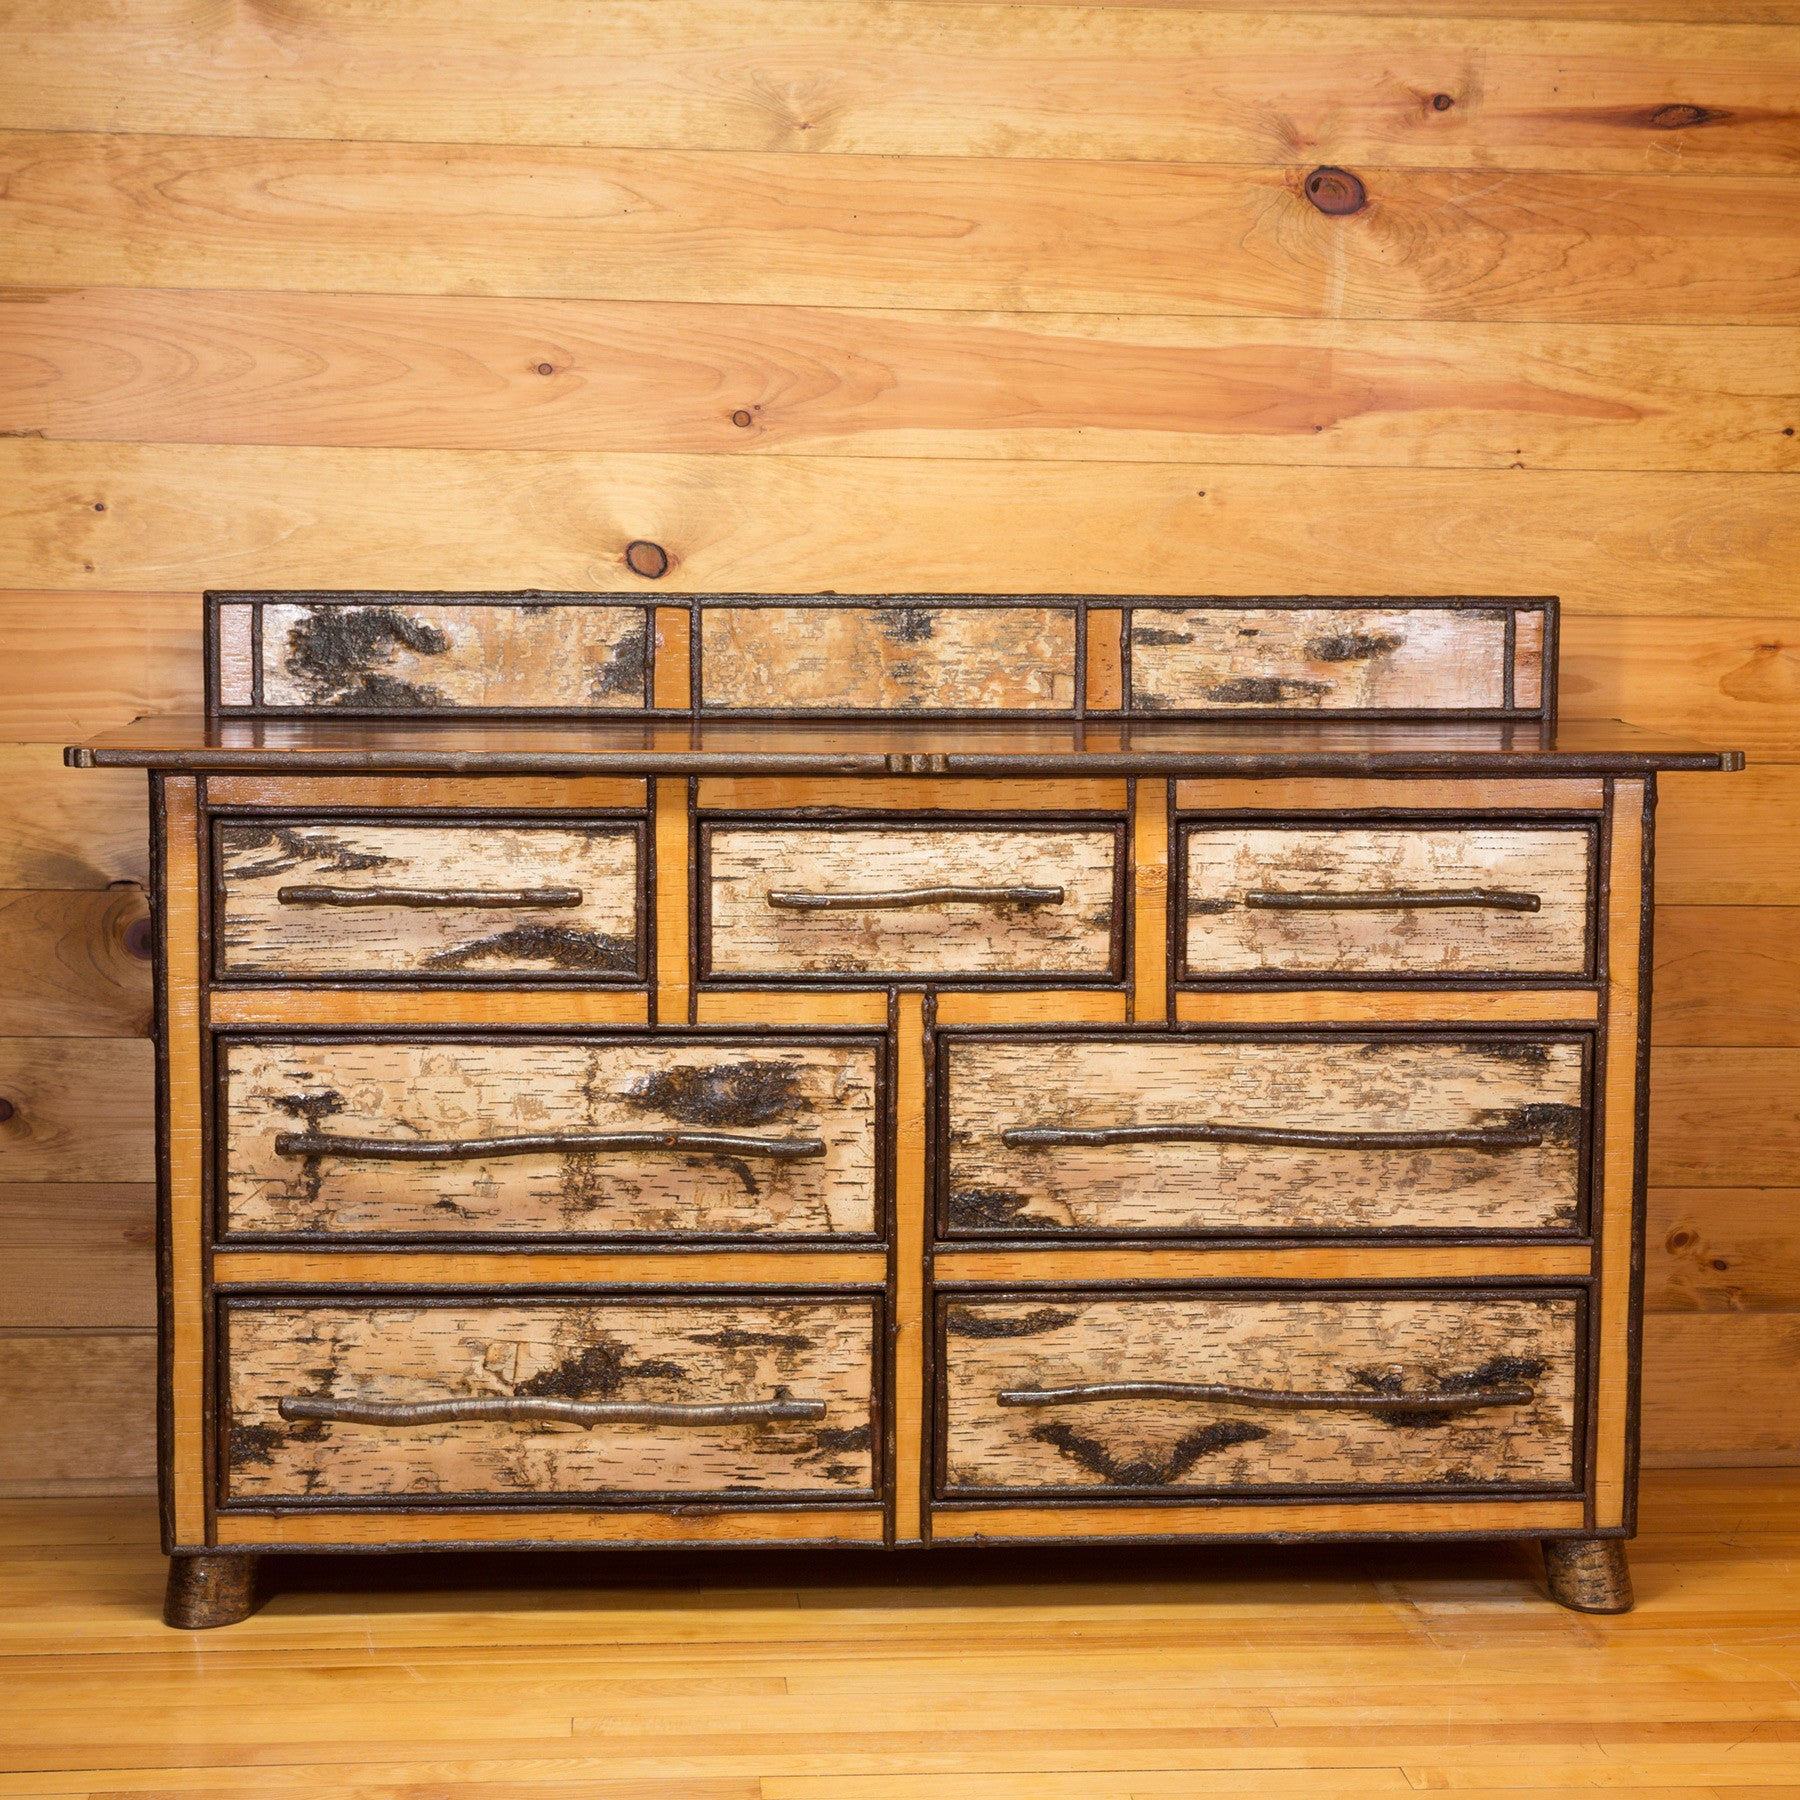 furniture dresser bd decorating decor pinterest ross ideas have headboards homegoods goods does market home world of online tj maxx bedroom dressers ikea size full store locations